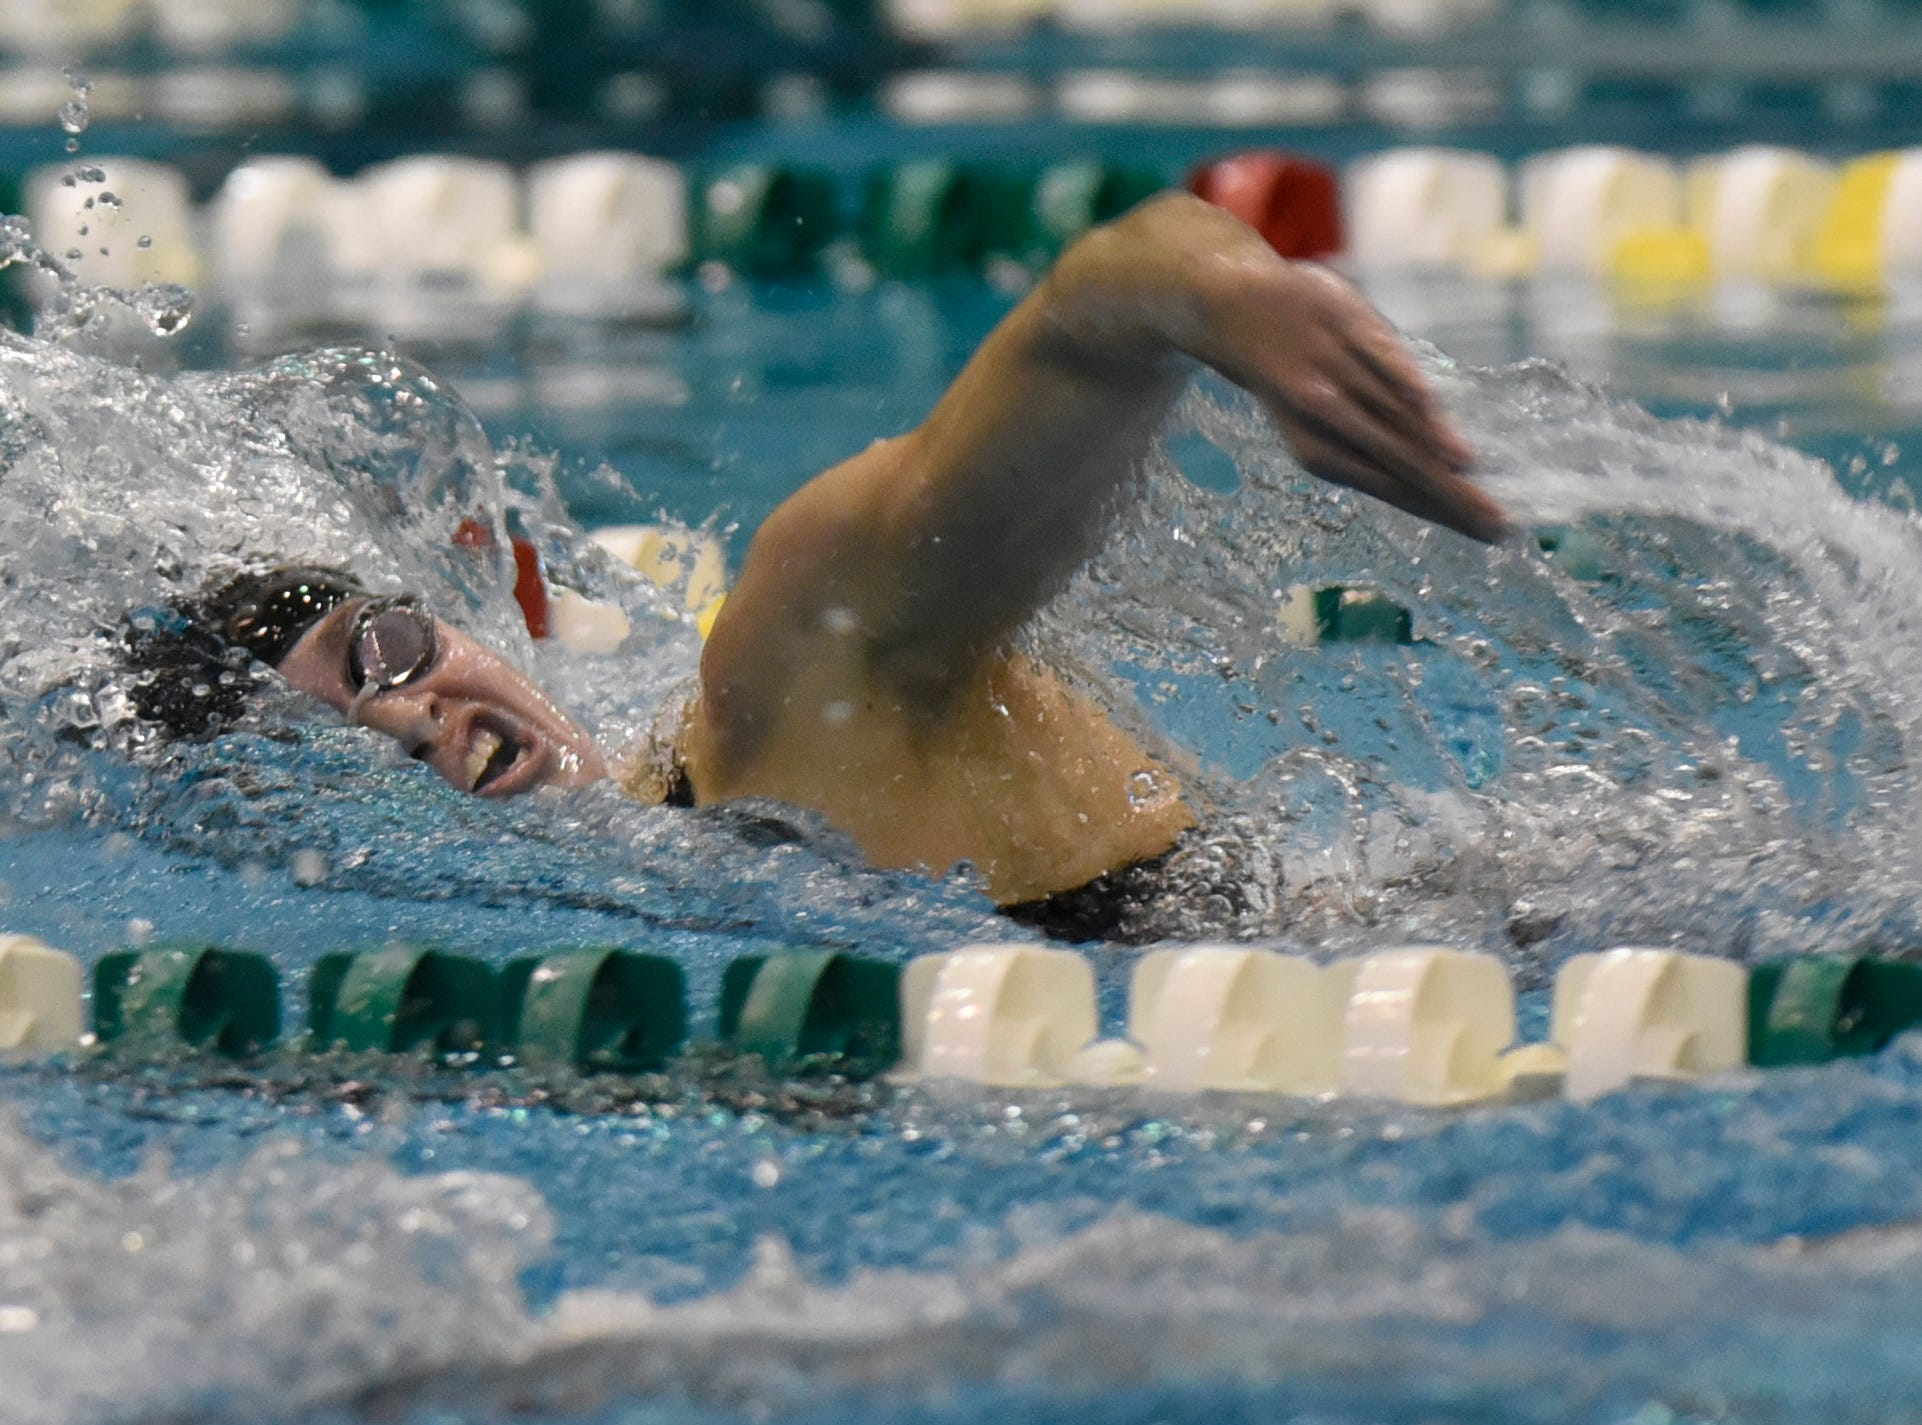 Harrison/Farmington's Emma Inch in the 500 freestyle at the Division 1 girls swimming and diving championships held at Eastern Michigan University Nov. 17, 2018.